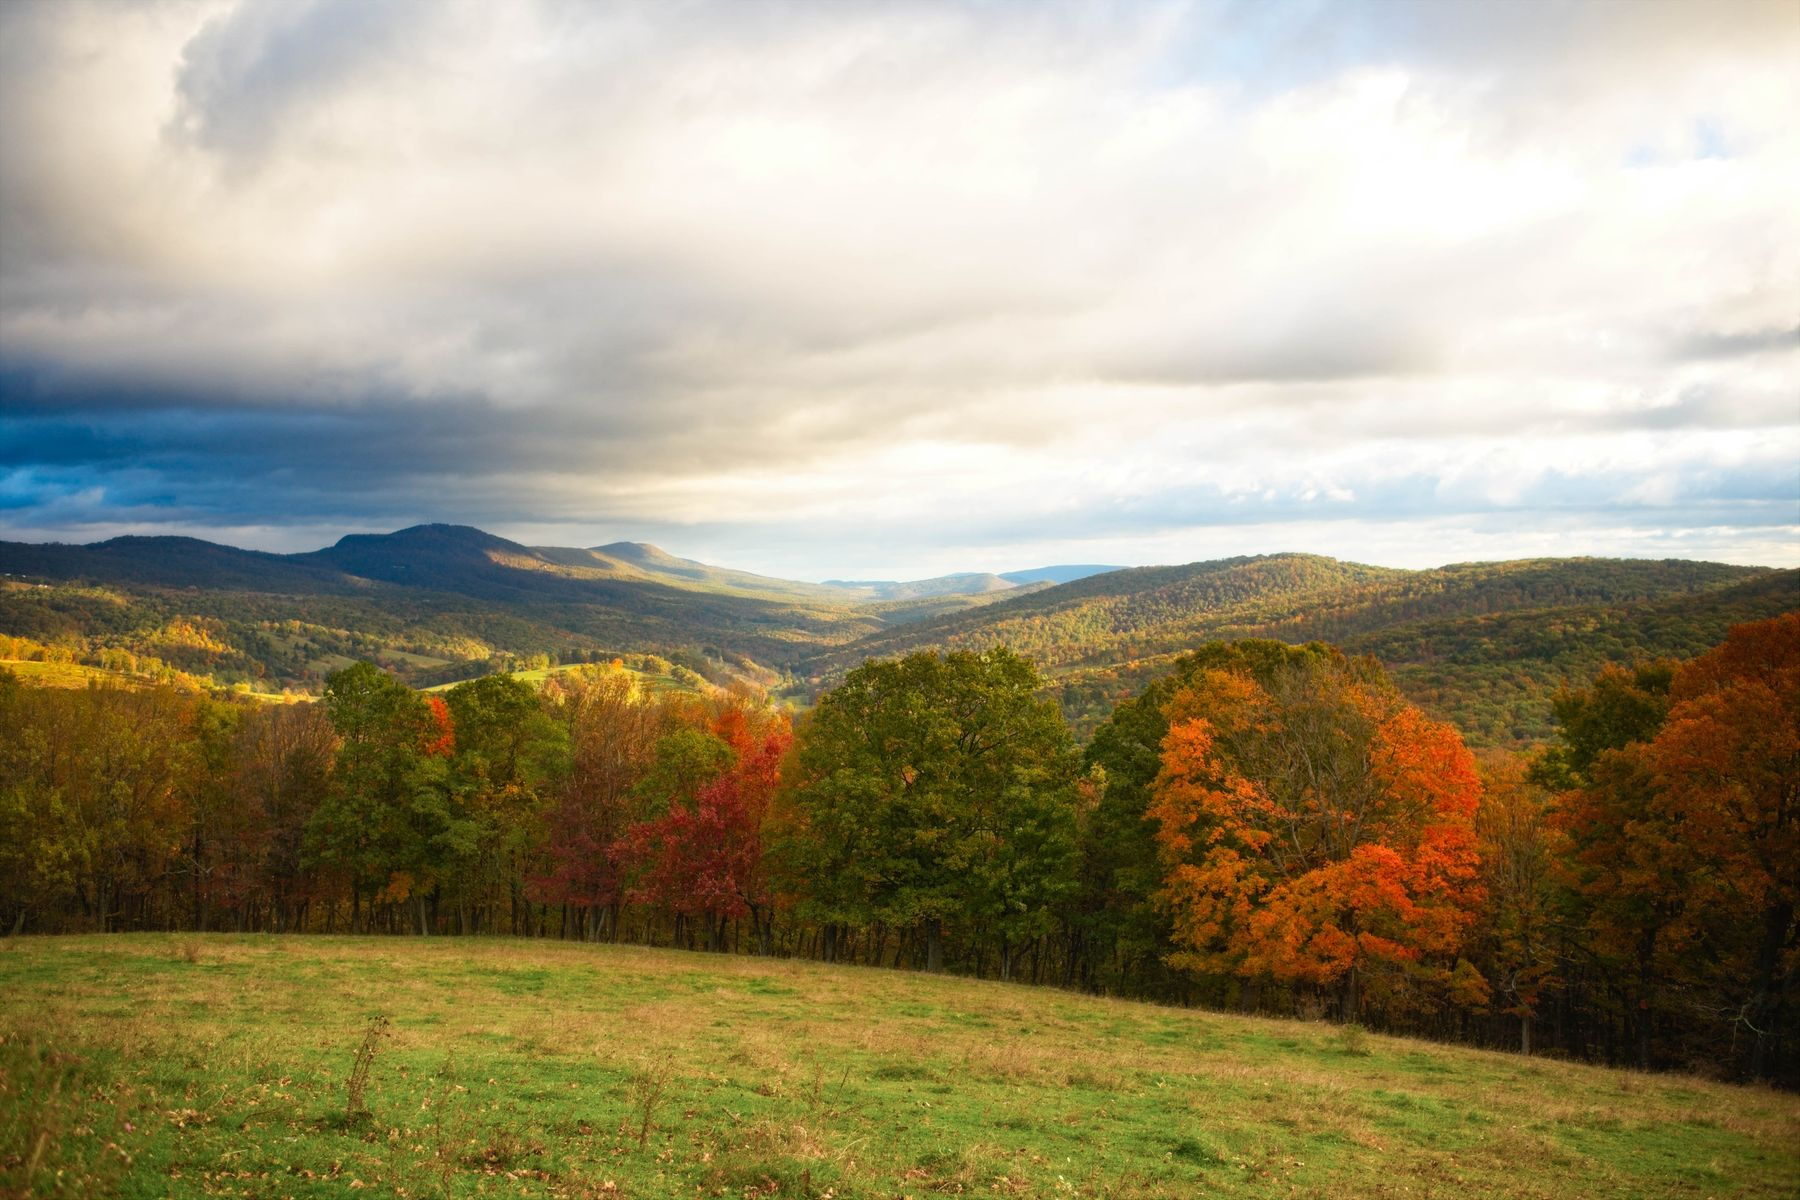 Rolling mountains covered in colorful foliage in small town America